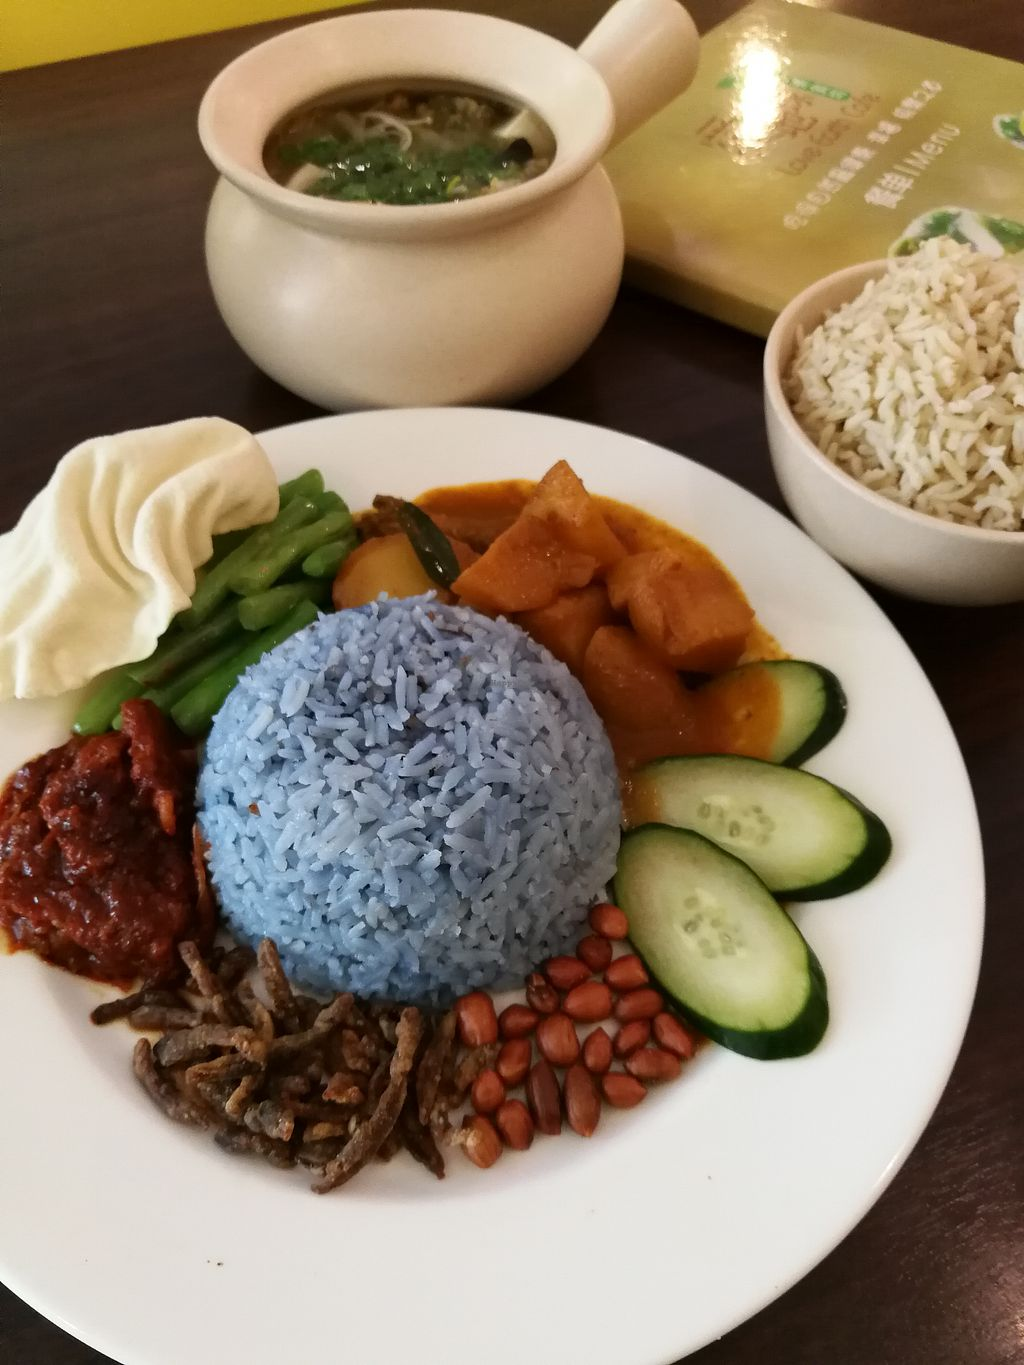 """Photo of Love Earth Cafe  by <a href=""""/members/profile/RawChefYin"""">RawChefYin</a> <br/>Nasi Lemak. Note the curry is not vegan as they mock meat has eggs in them. They gave us potatoes instead but after I finished my meal I found out they didn't cook the potatoes separately. I guess my chat with them got lost in translation... Perhaps I can ask for more vegetables next time or ask to cook one separately? <br/> April 24, 2018  - <a href='/contact/abuse/image/66553/390314'>Report</a>"""